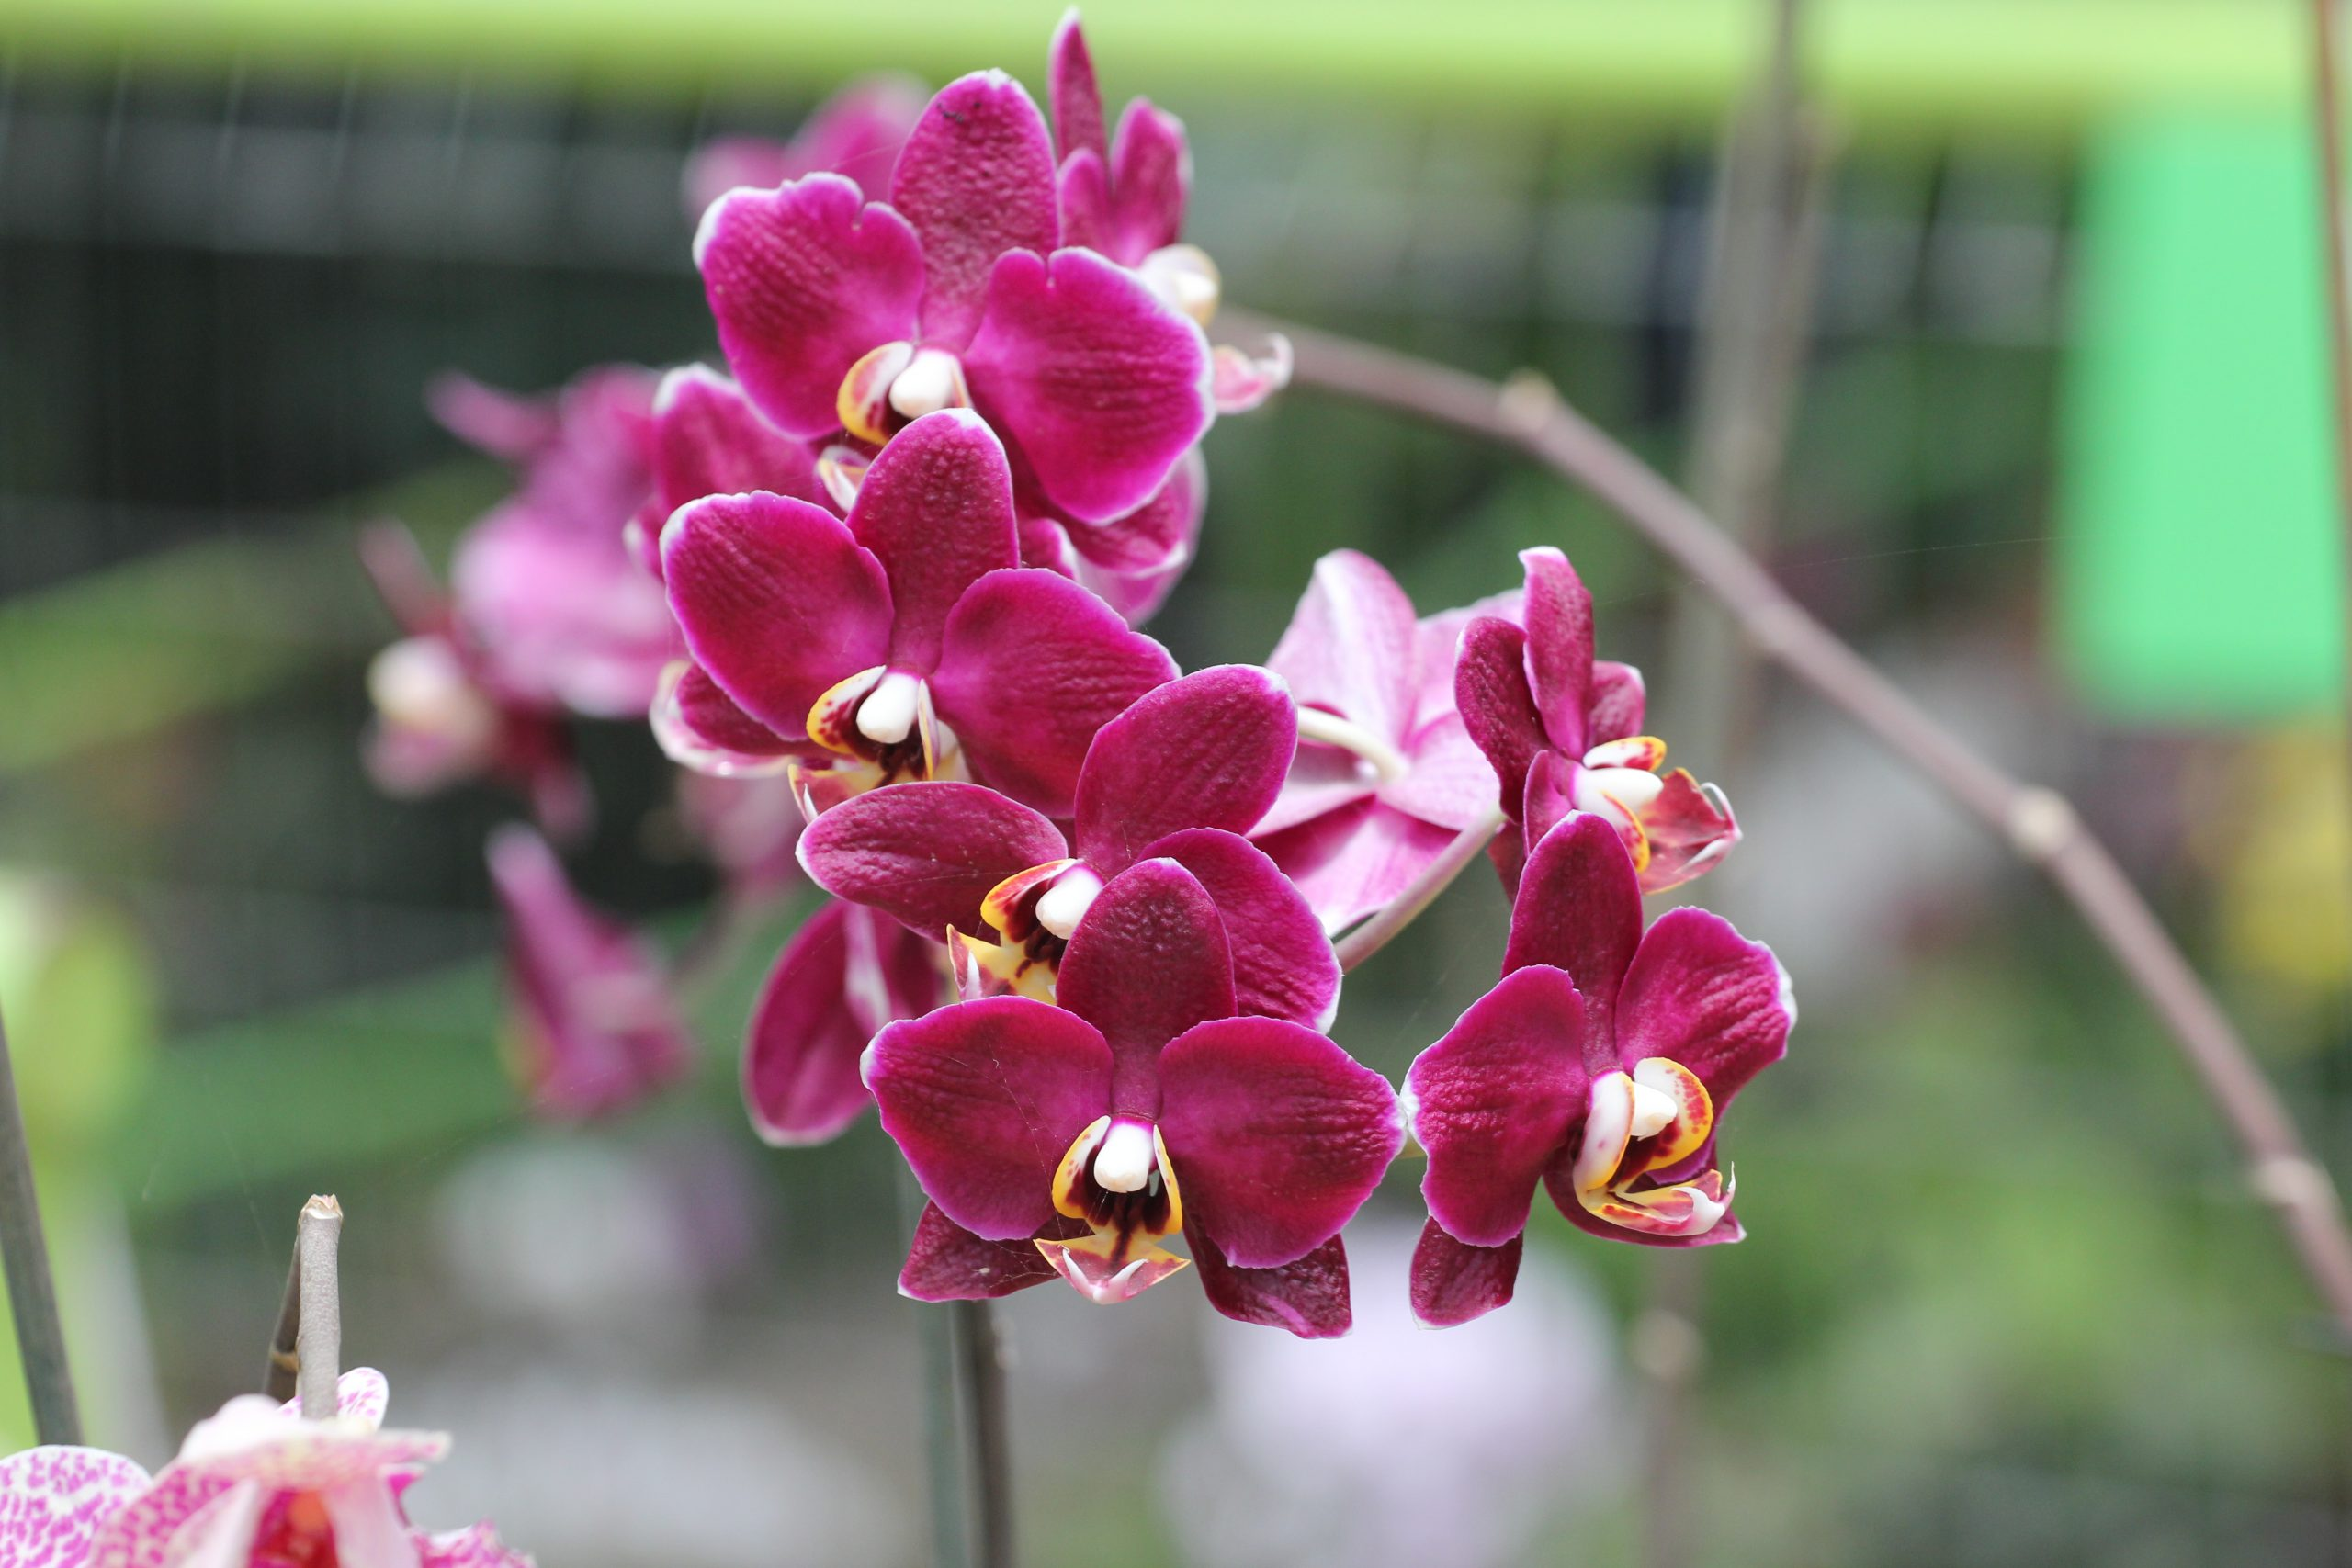 OrchidSocieties.com (Orchid Societies), domain name for sale